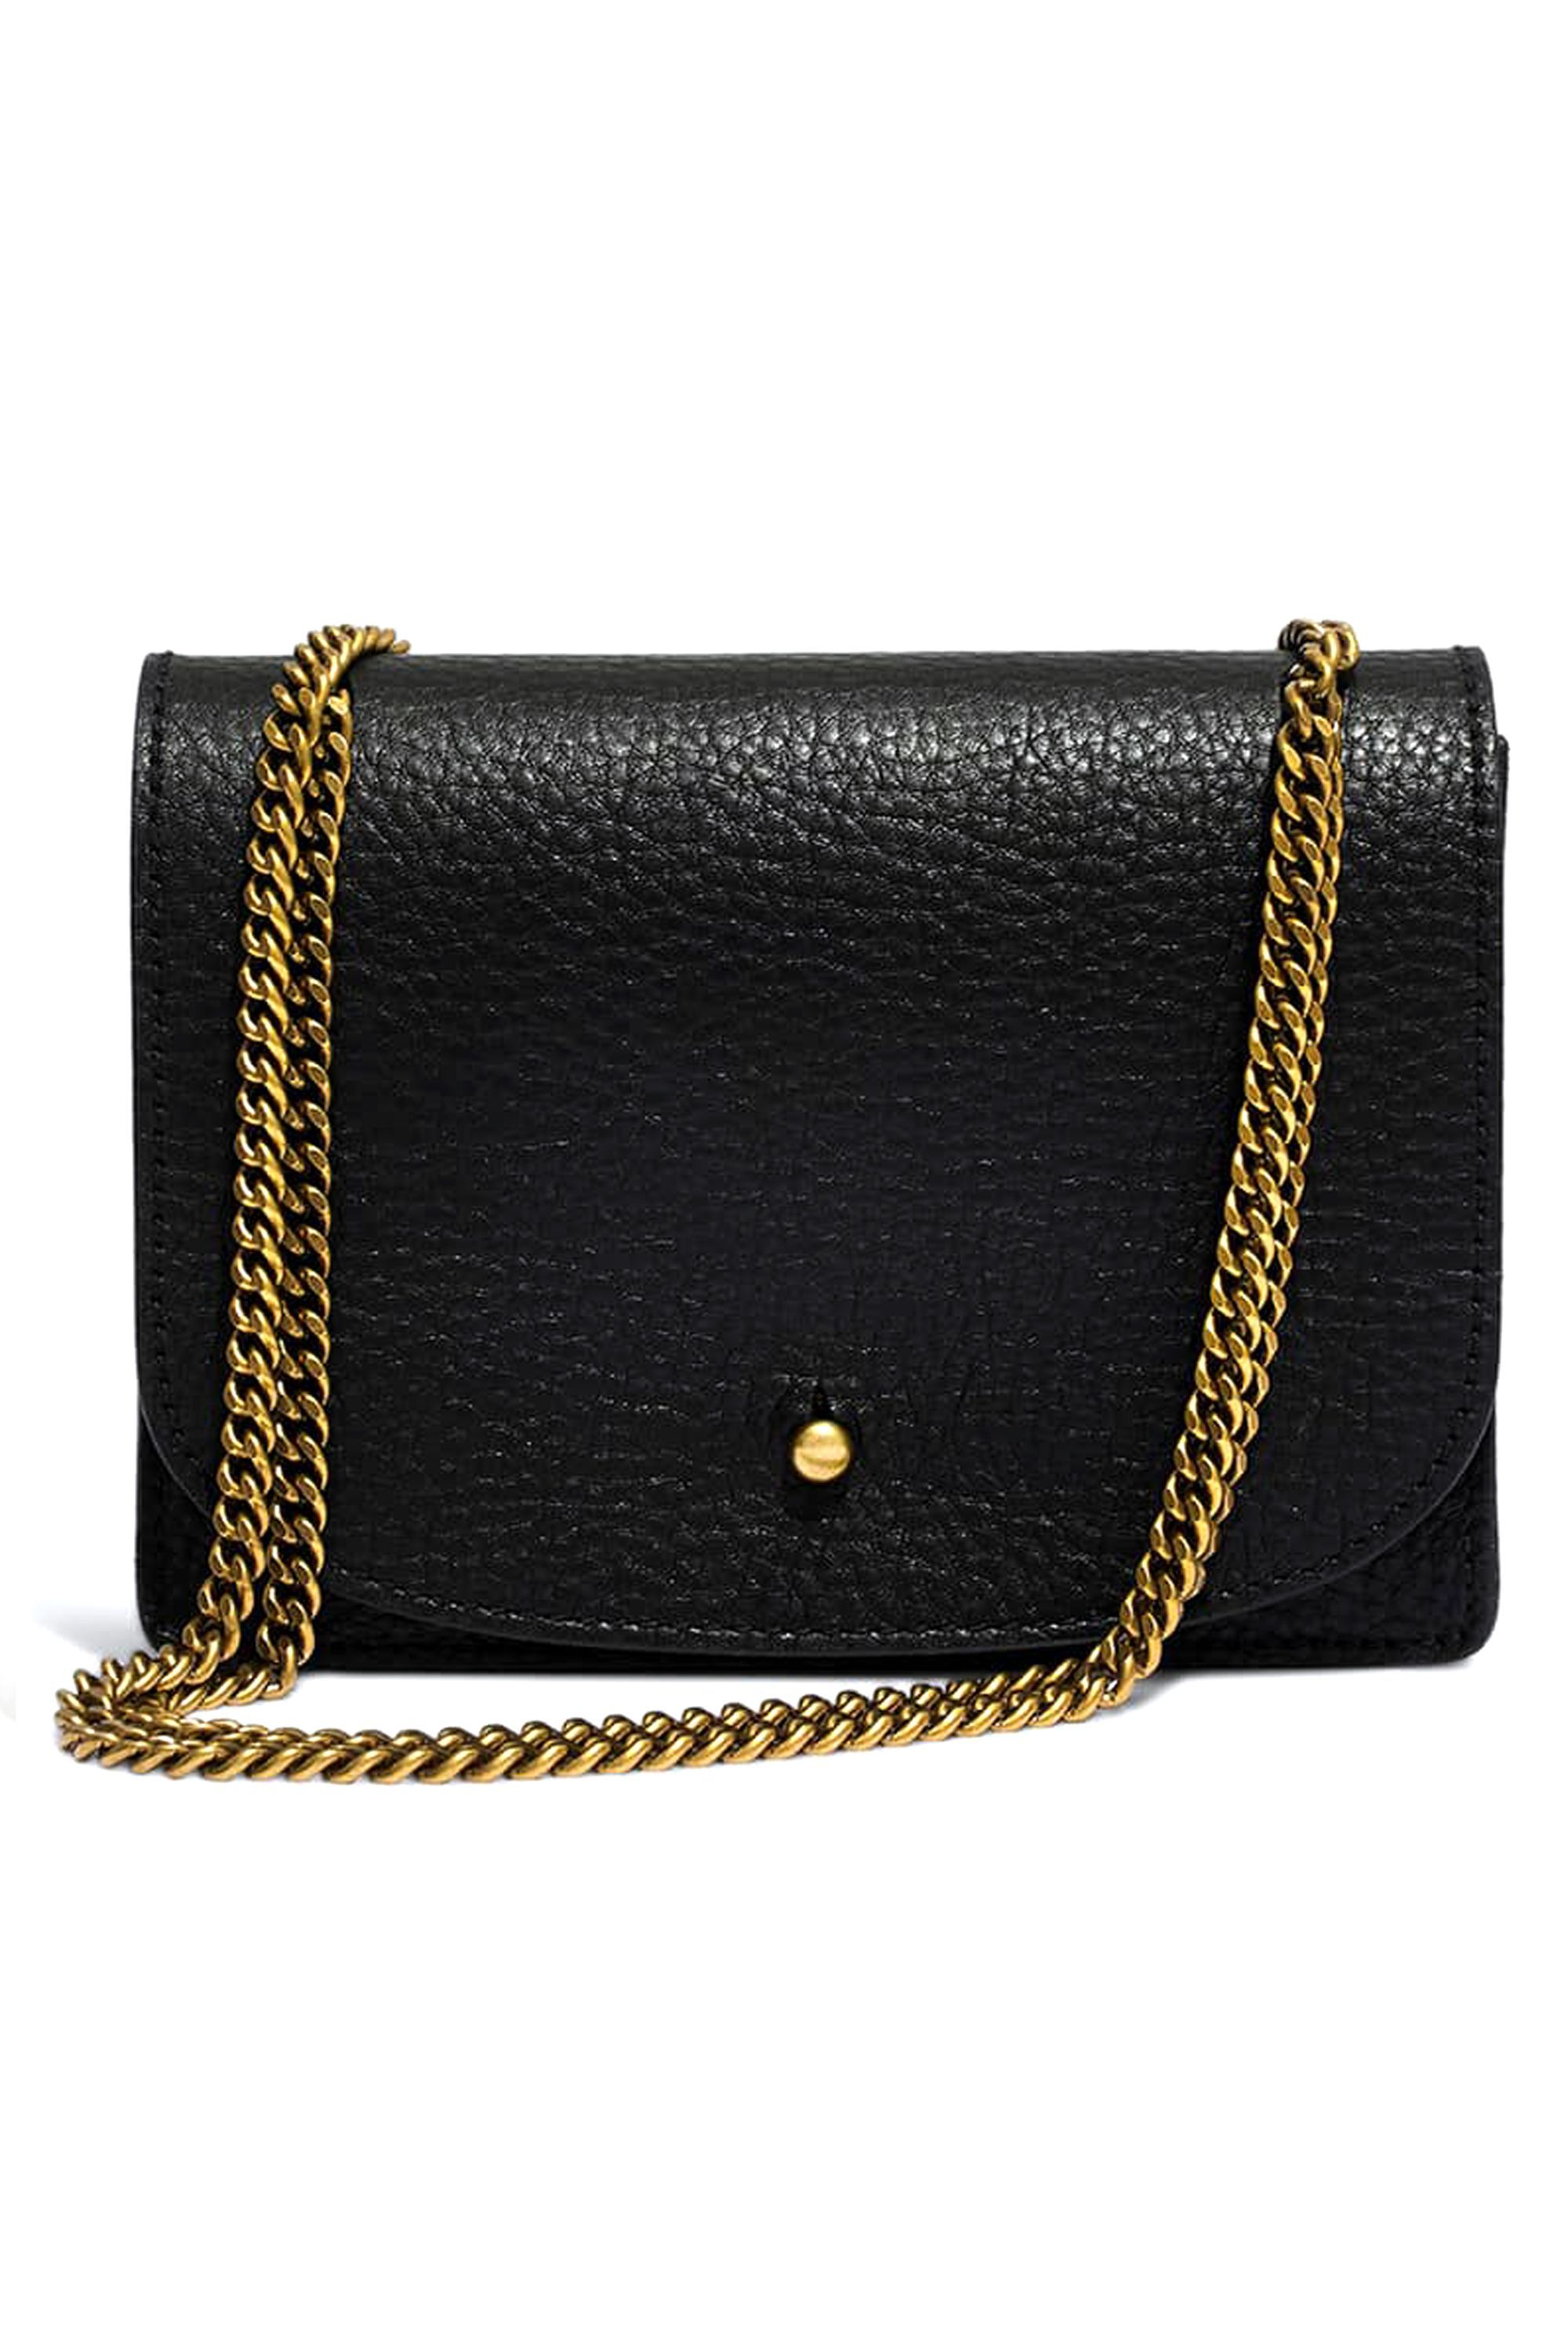 be58ff6d23a7 11 Spring Bag Trends 2019 — Top Spring Accessory Runway Trends For Women